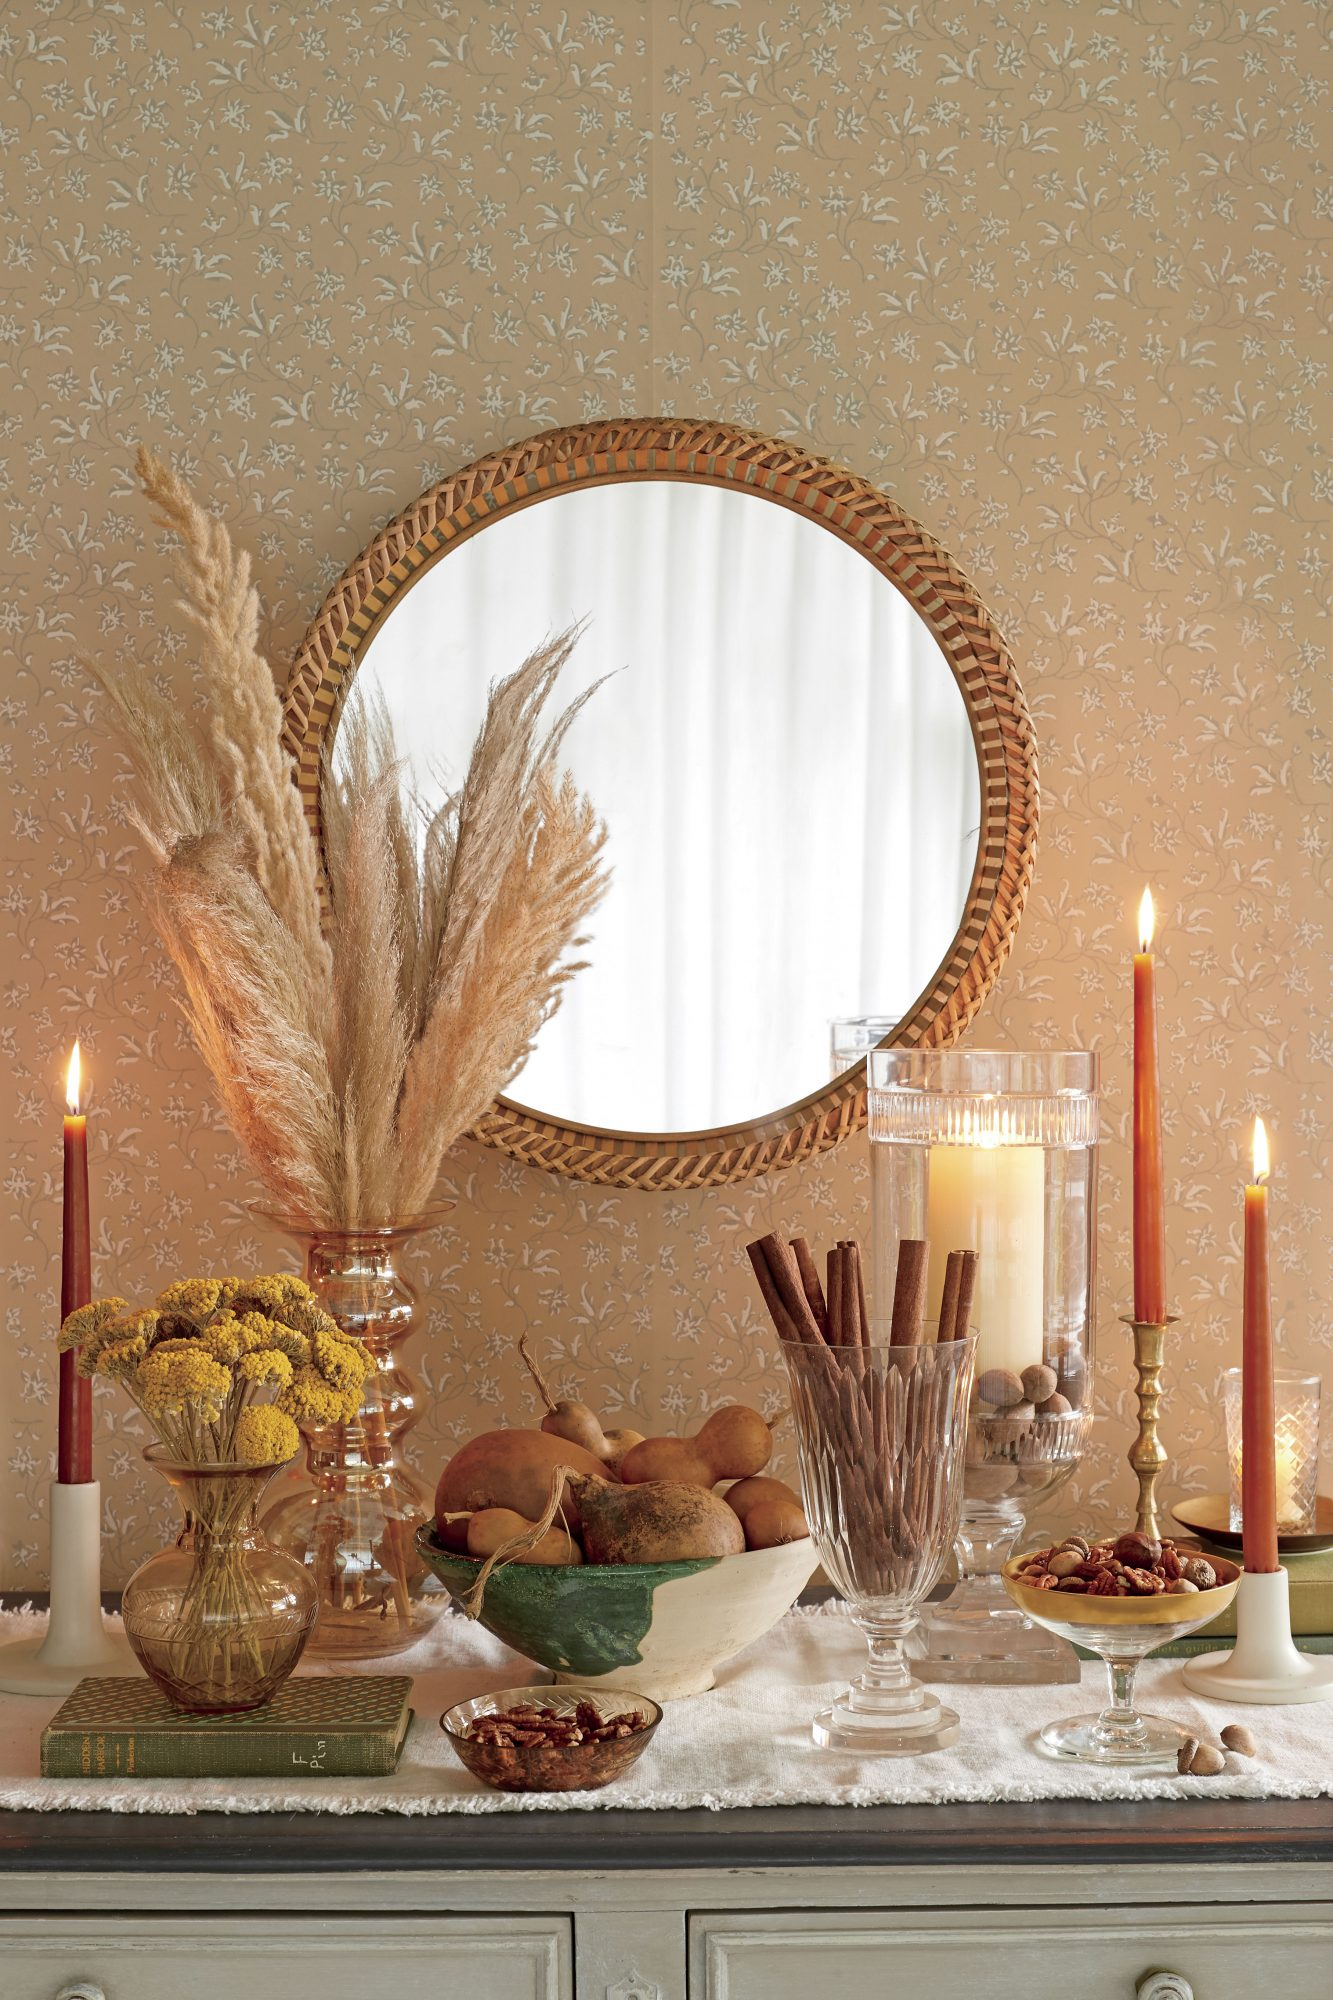 Grouped Items Fall decor